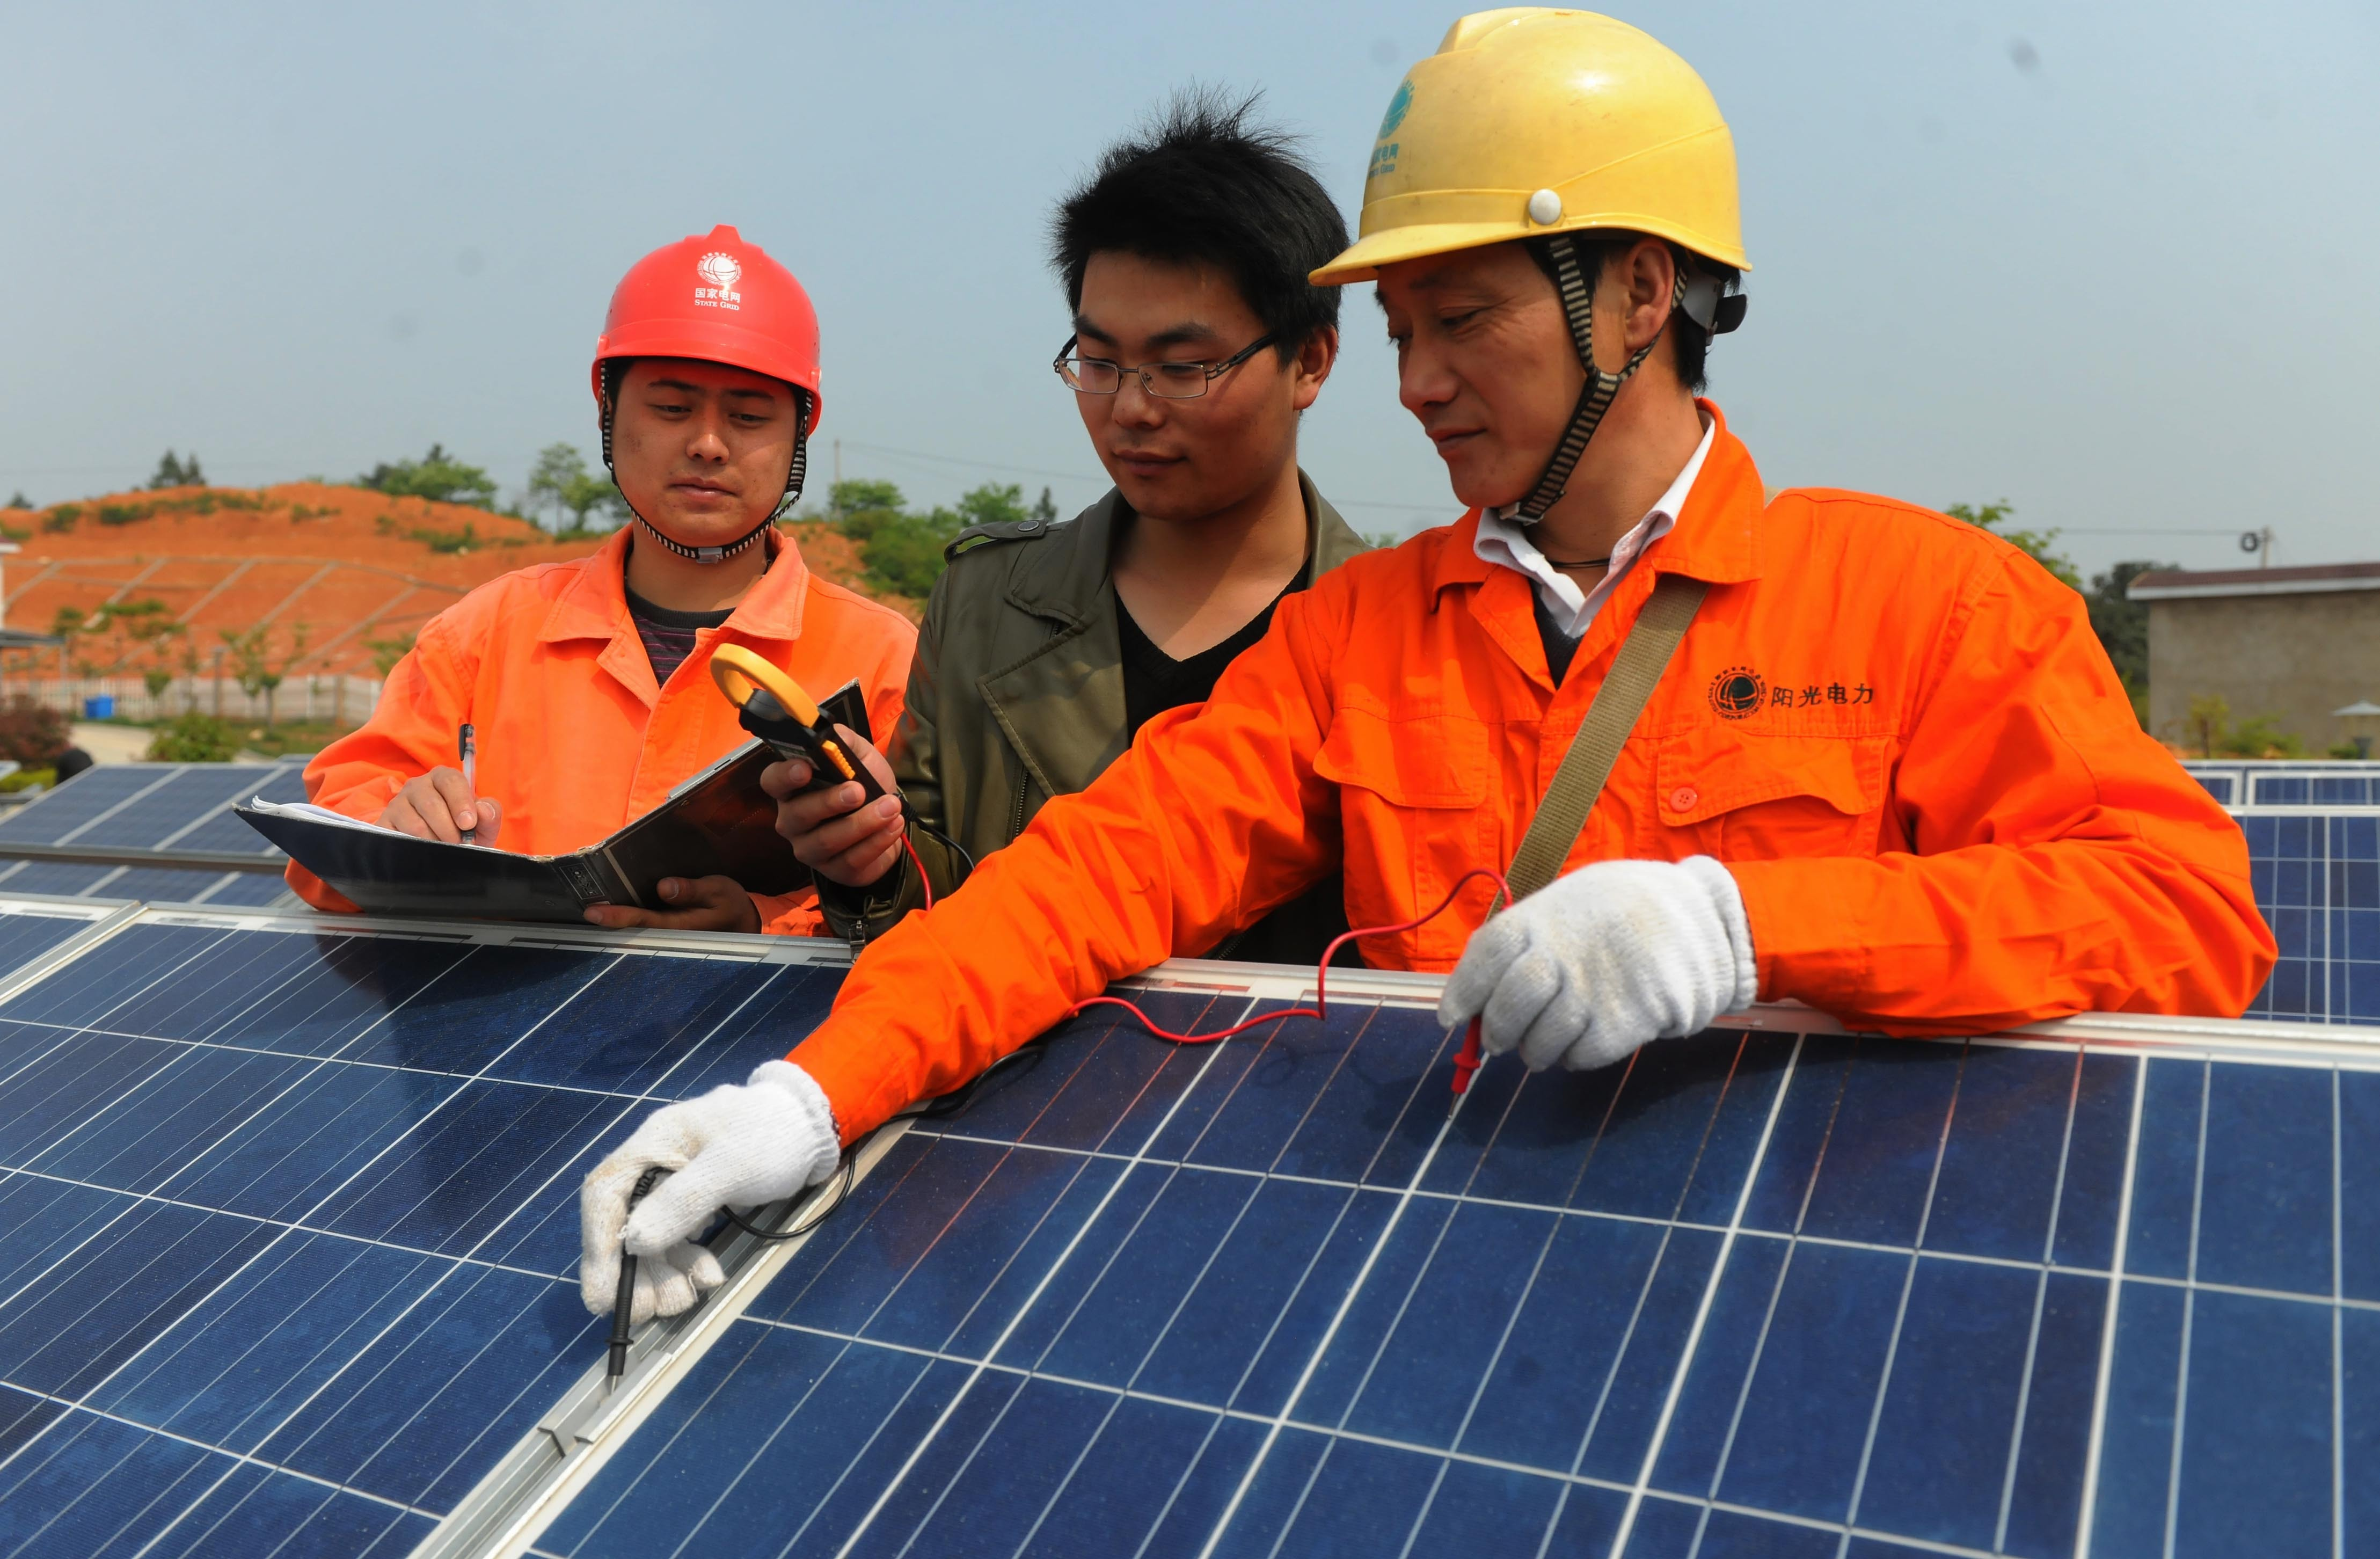 China's contribution to the global mitigation effort